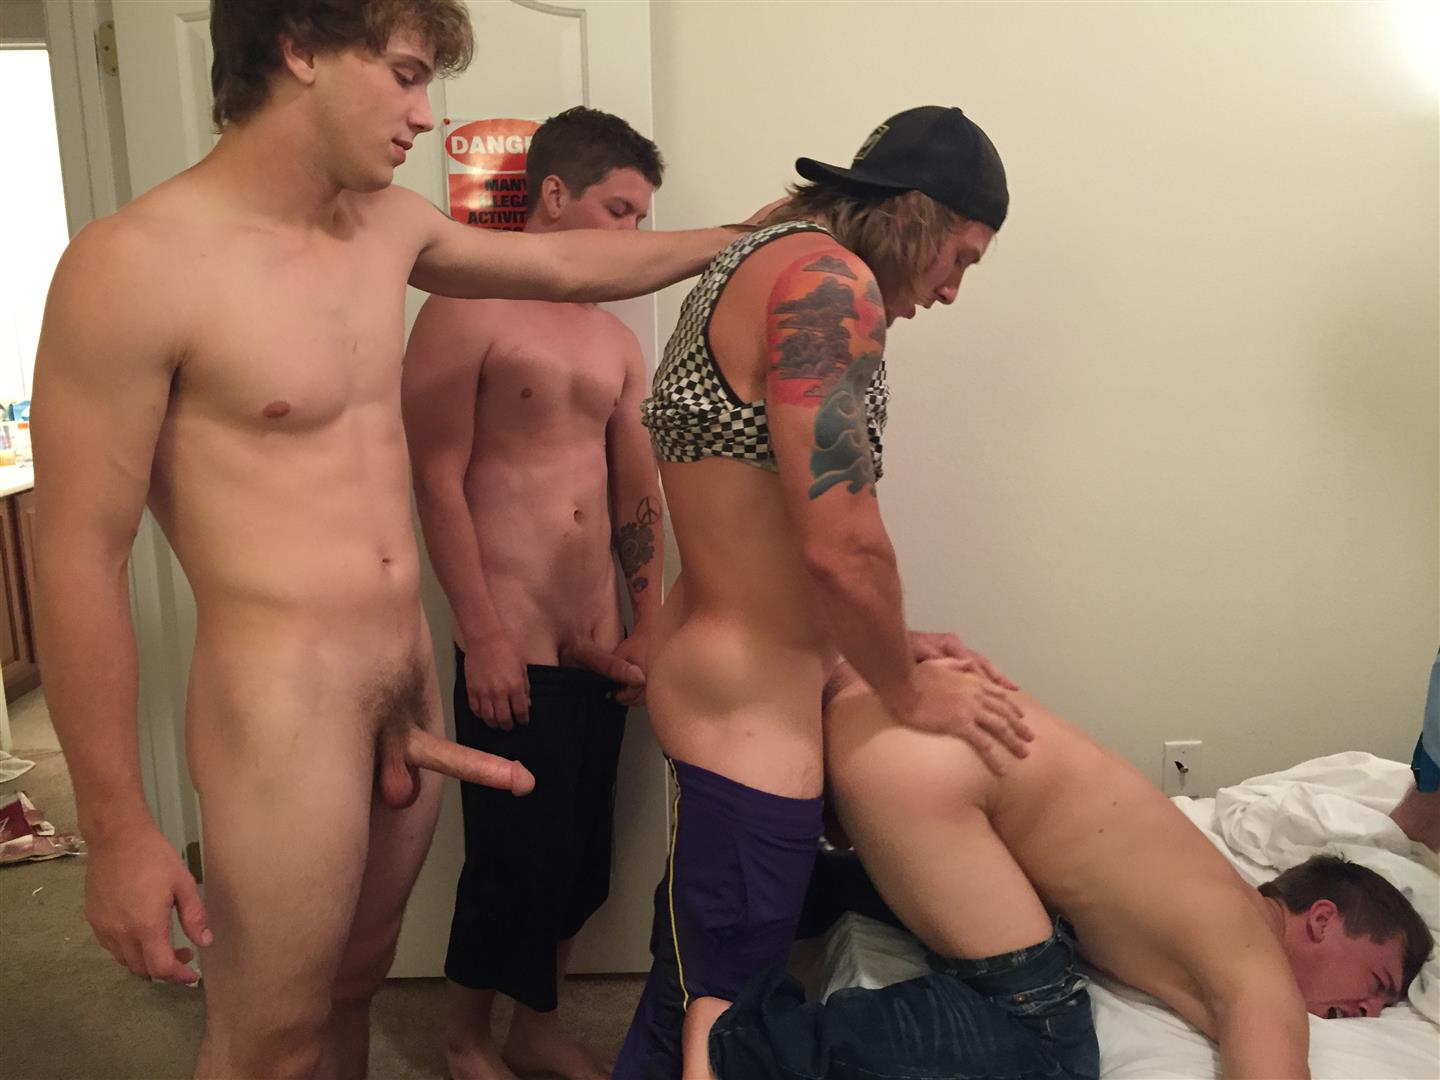 Fraternity-X-Naked-Frat-Boys-Barebacking-Freshman-Ass-Amateur-Gay-Porn-04 Fraternity Boys Take Turns Barebacking A Scared Freshman Ass